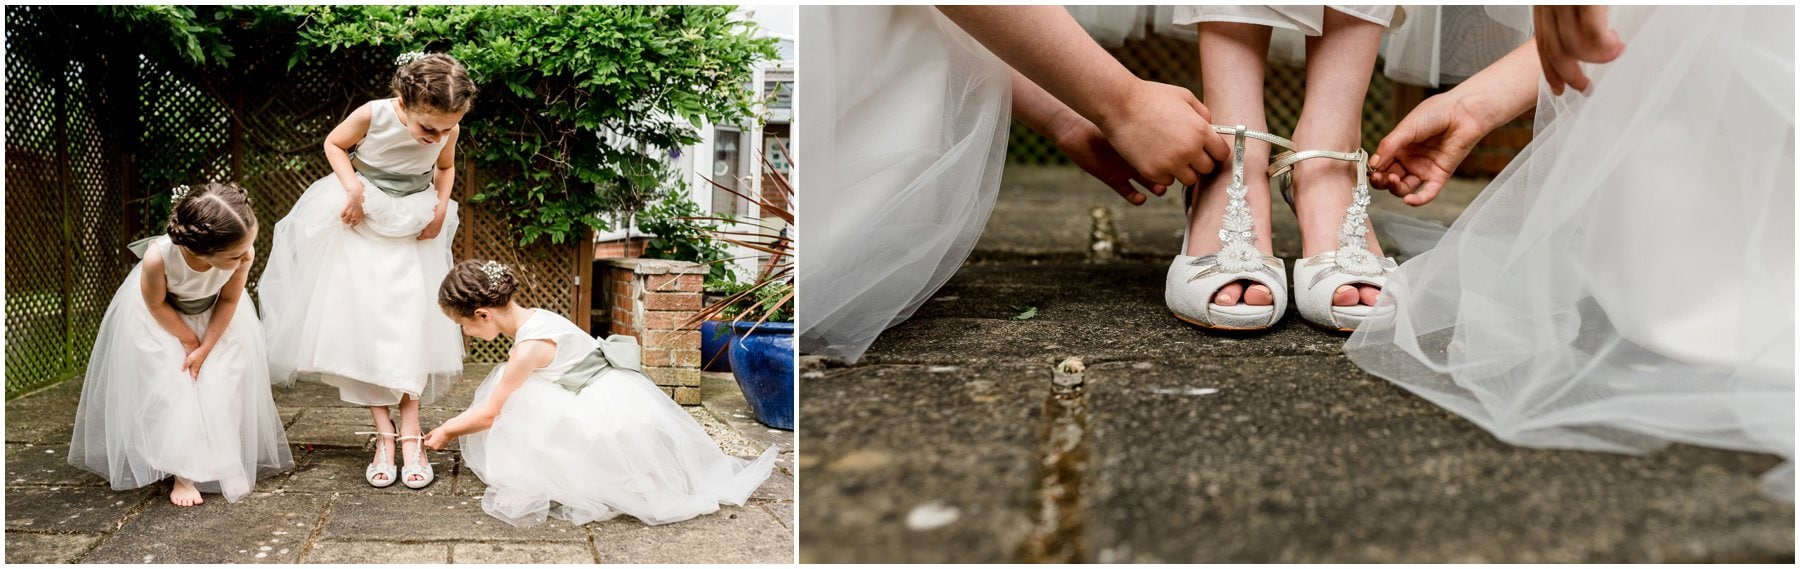 Ffion and Hefin's beautiful, elegant summer wedding at Ten Dwr Hall in Llangollen, Wales with wild flowers and sage colours by West Midlands and Wales Wedding photographer Lisa Carpenter Photography, specialising in cool, contemporary wedding photos. Flower girls trying on brides shoes. Rachel Simpson shoes.